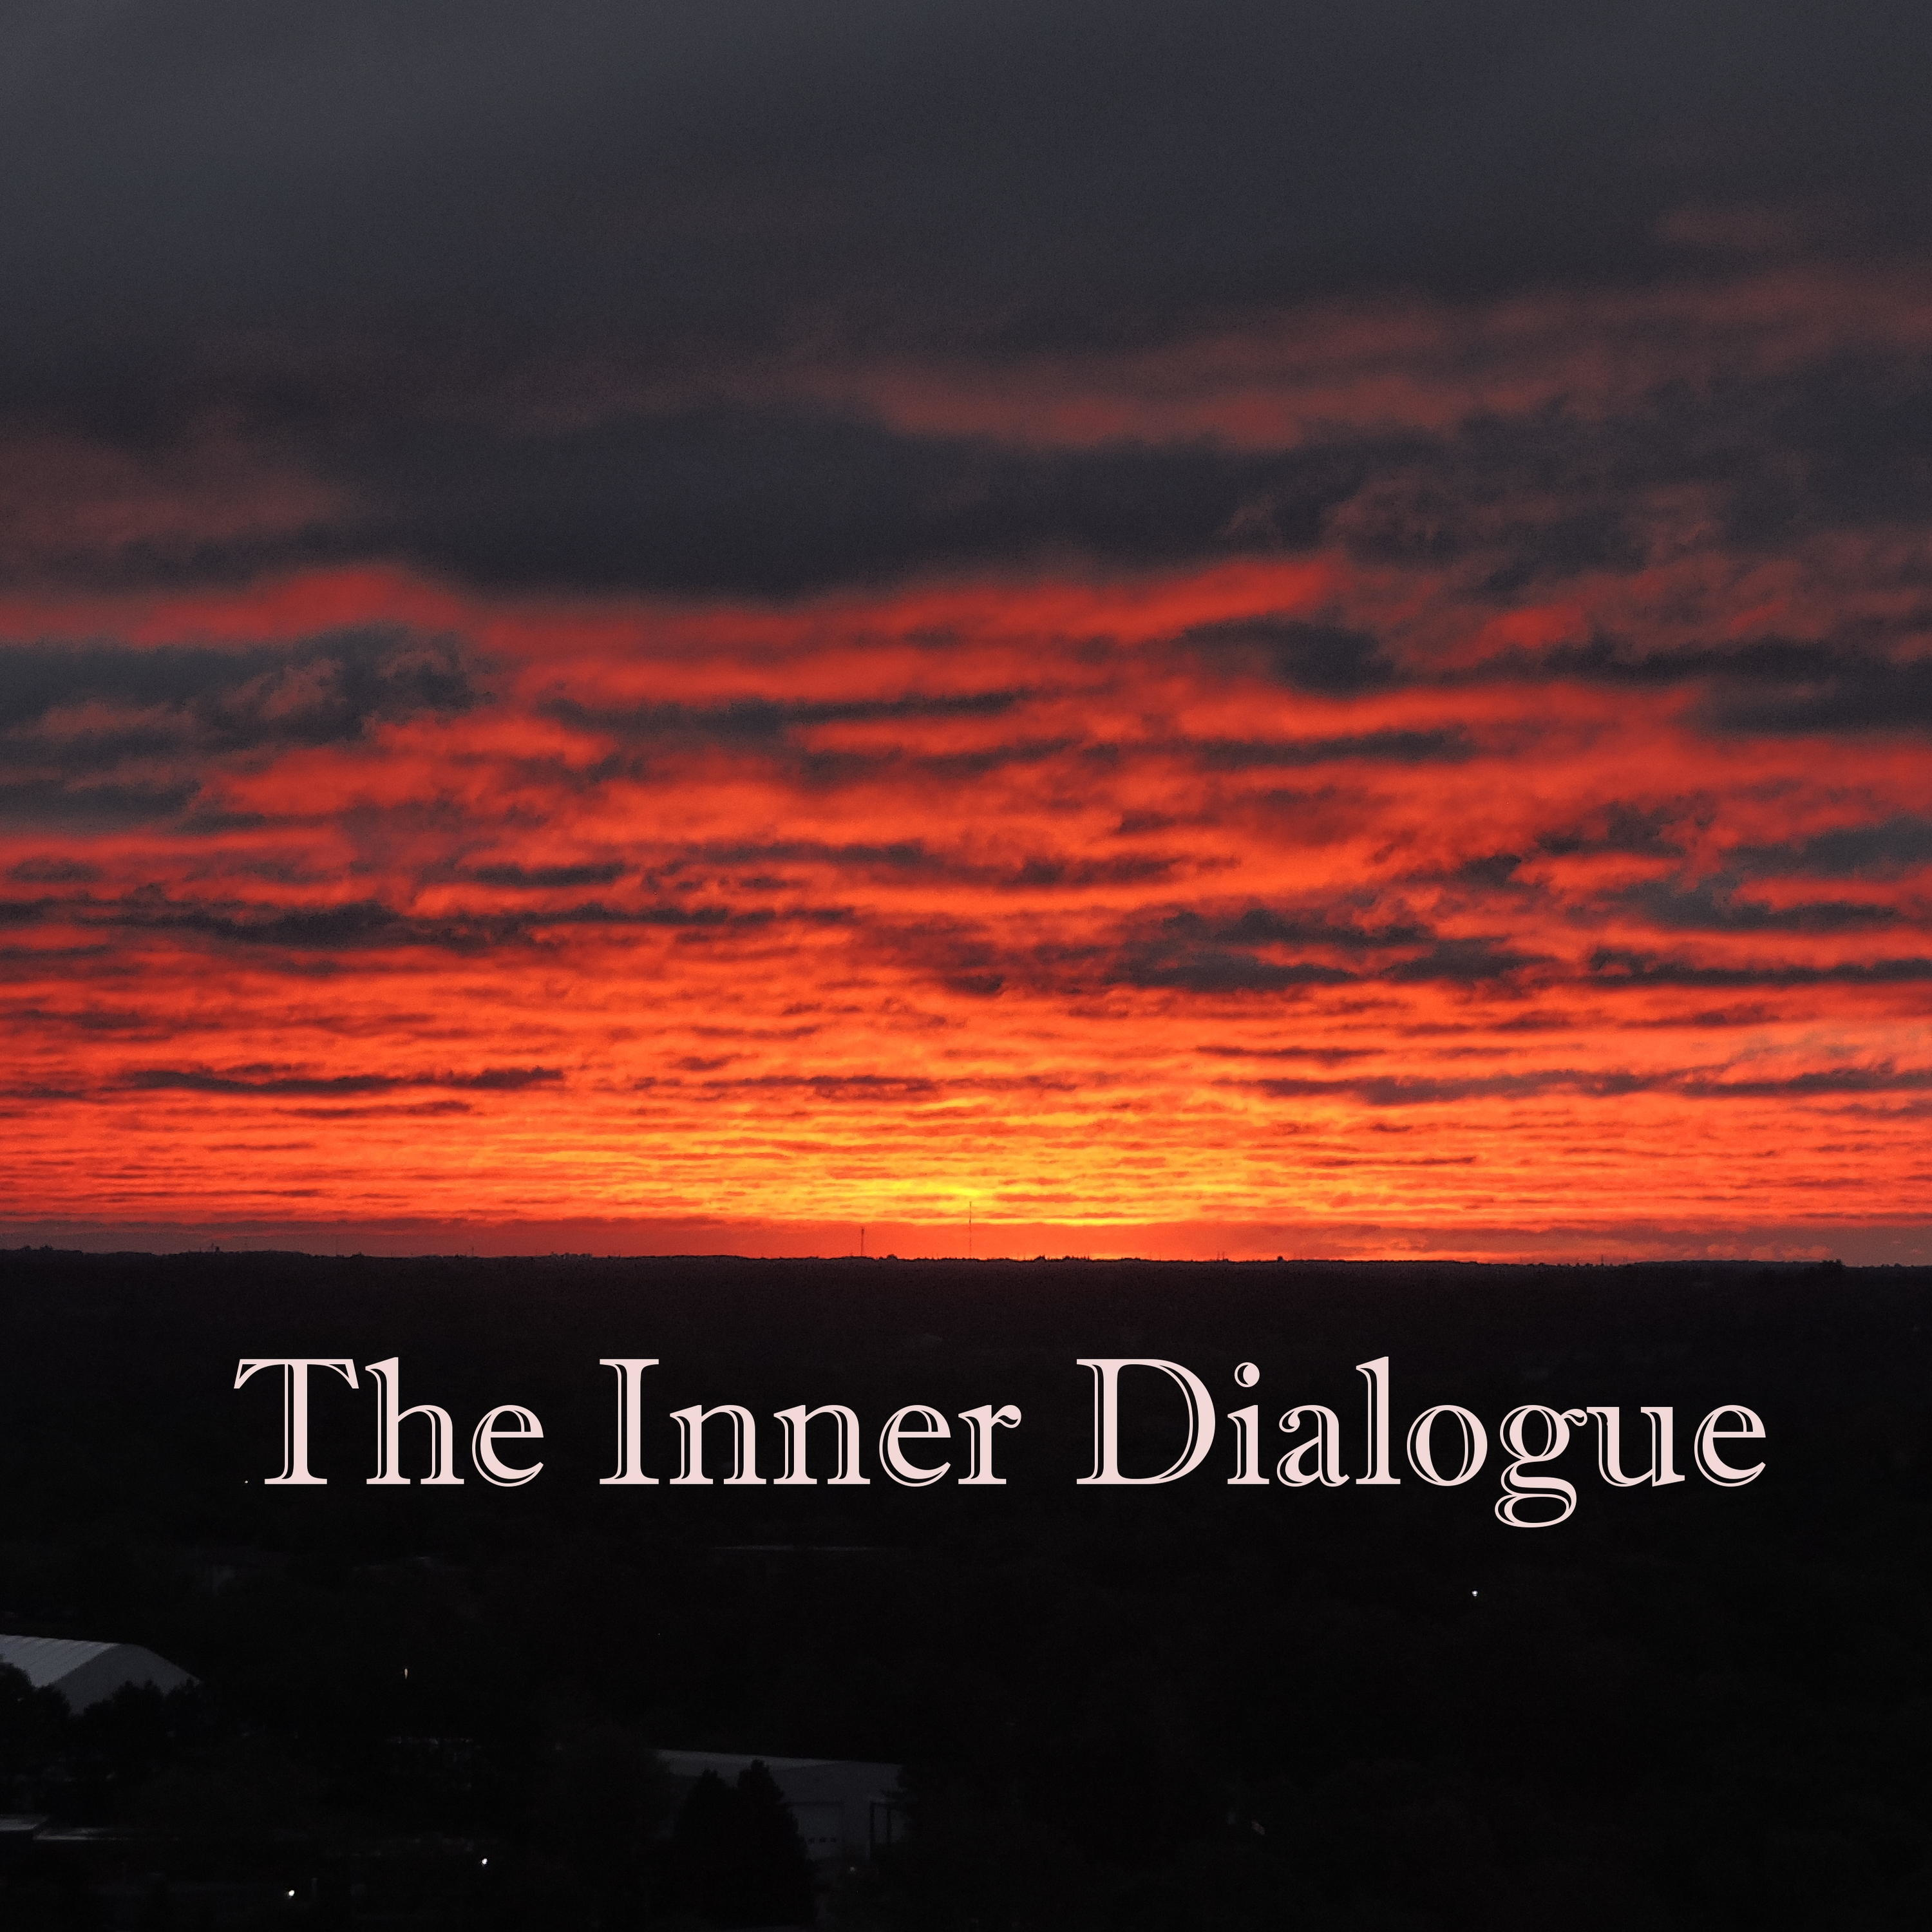 The Inner Dialogue